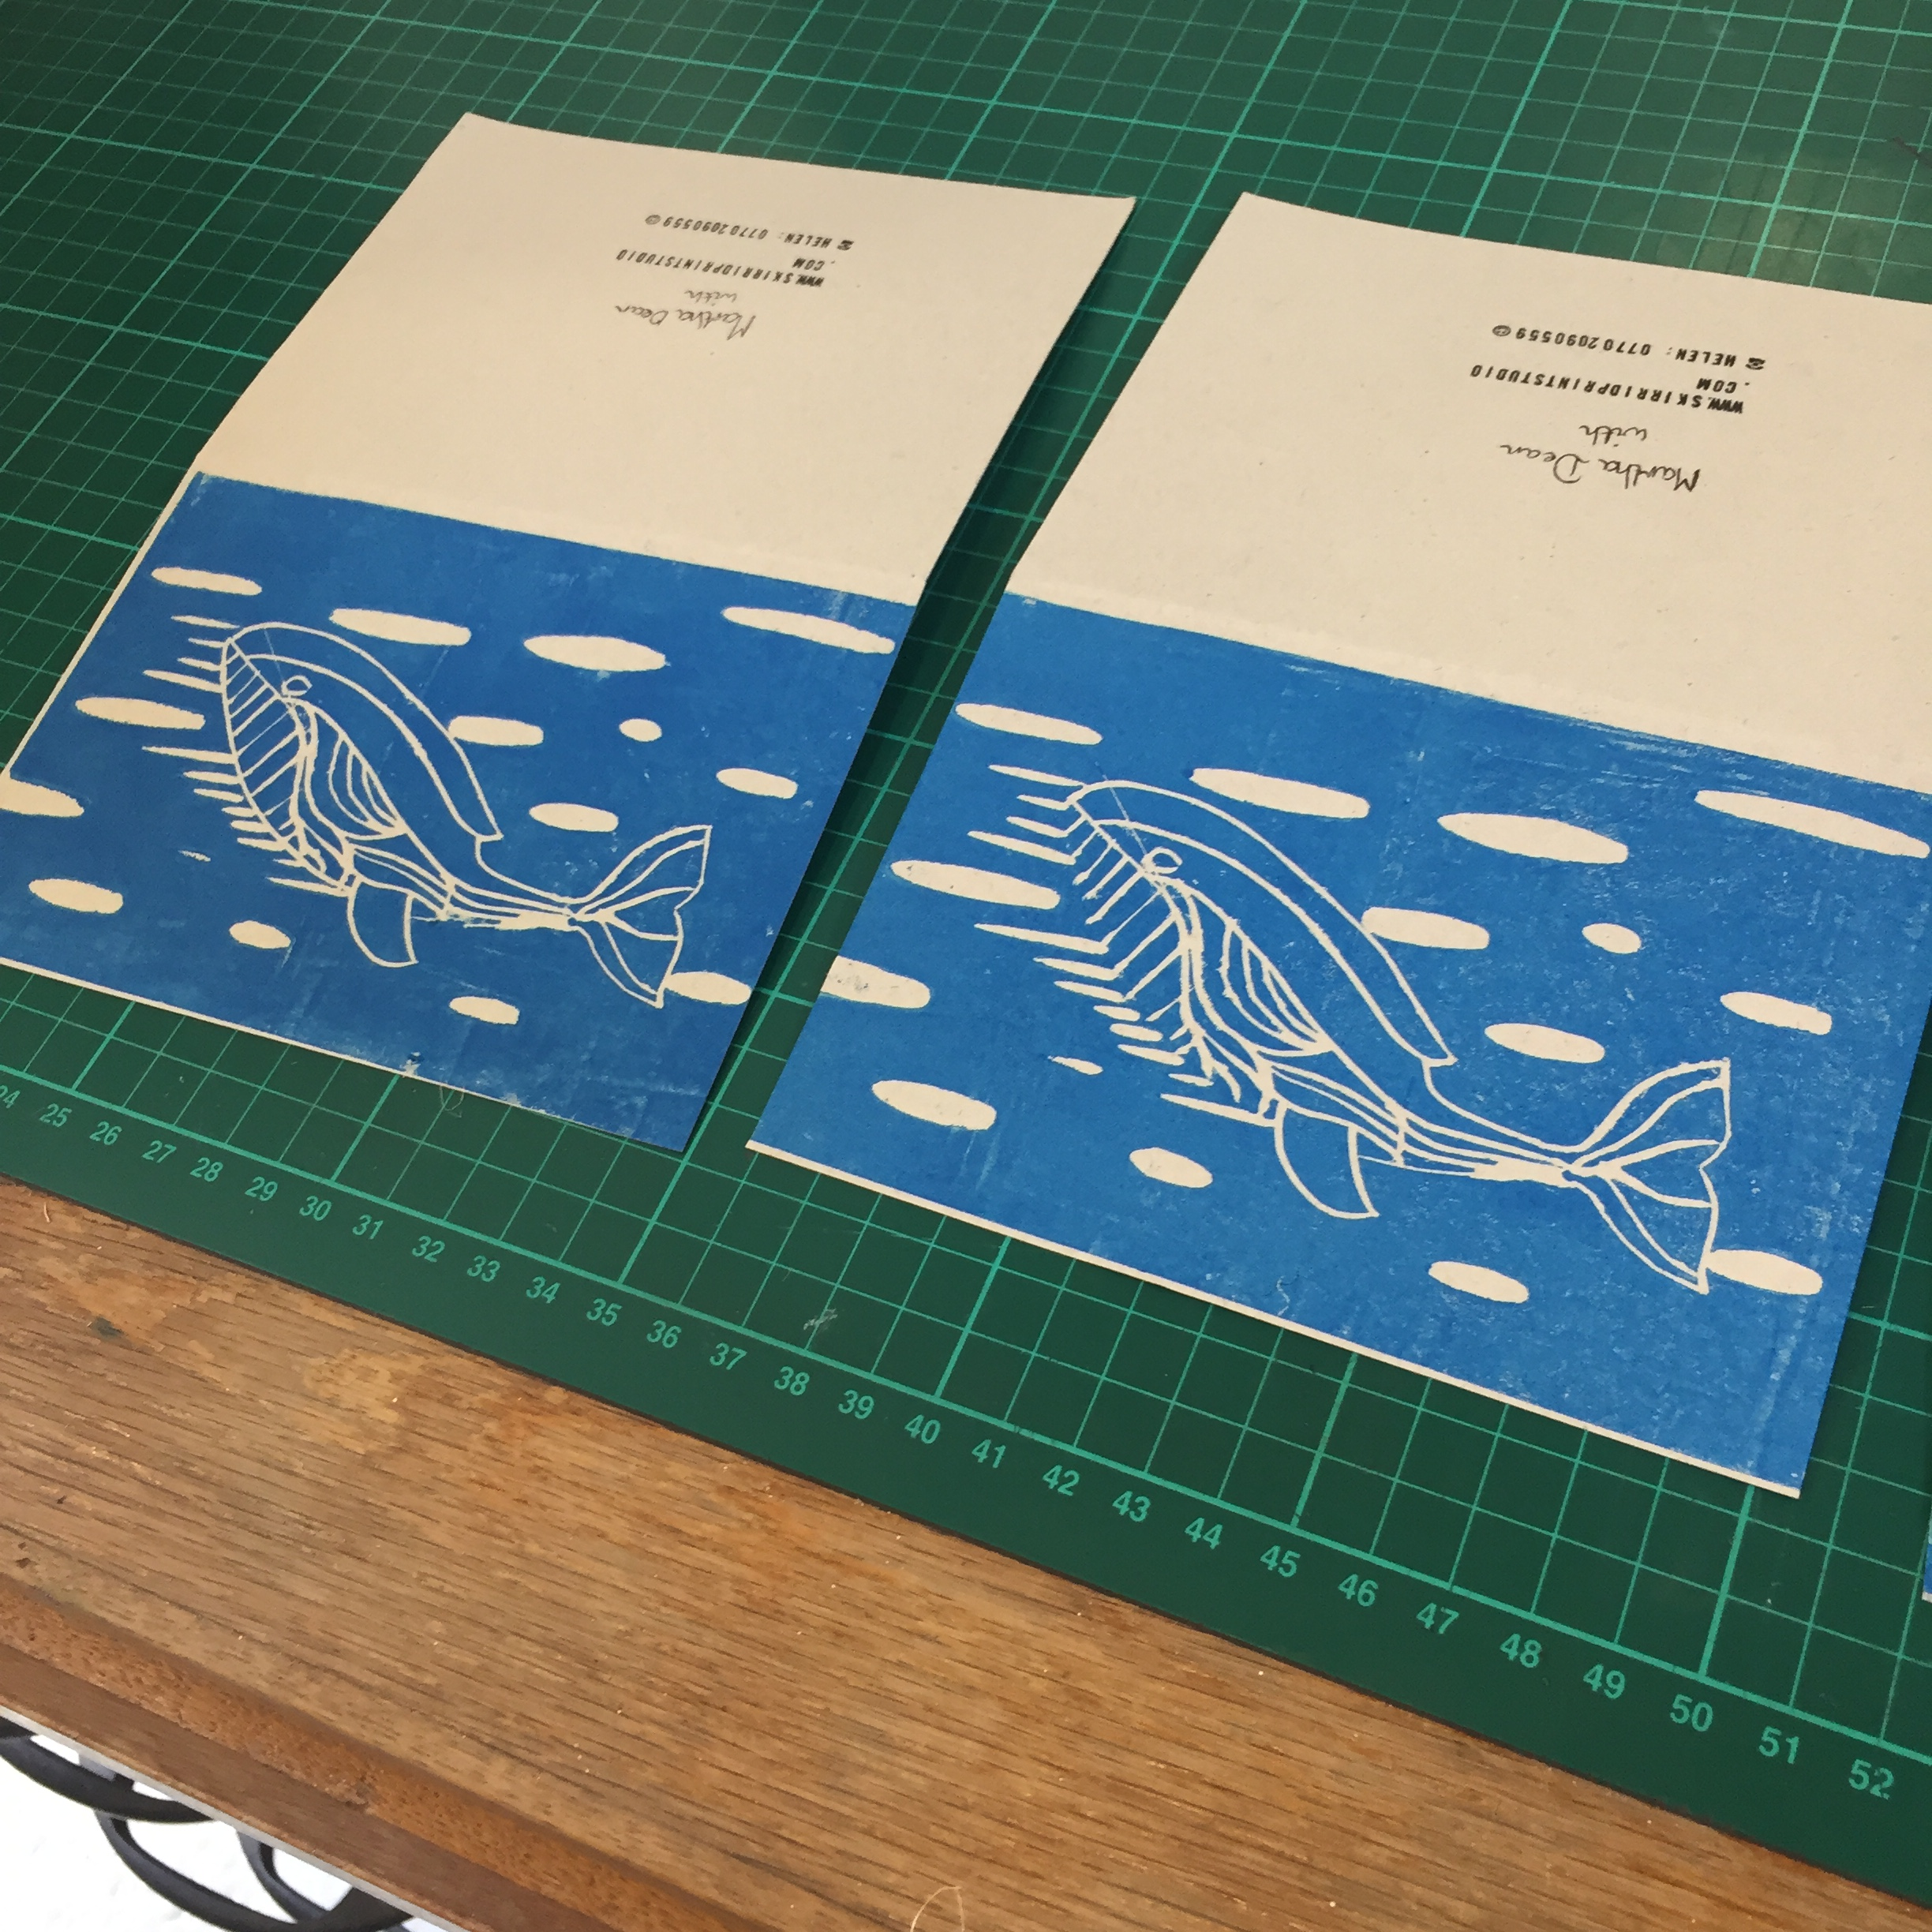 Photo of 2 A6 linocut cards made at Skirrid Print Studio.